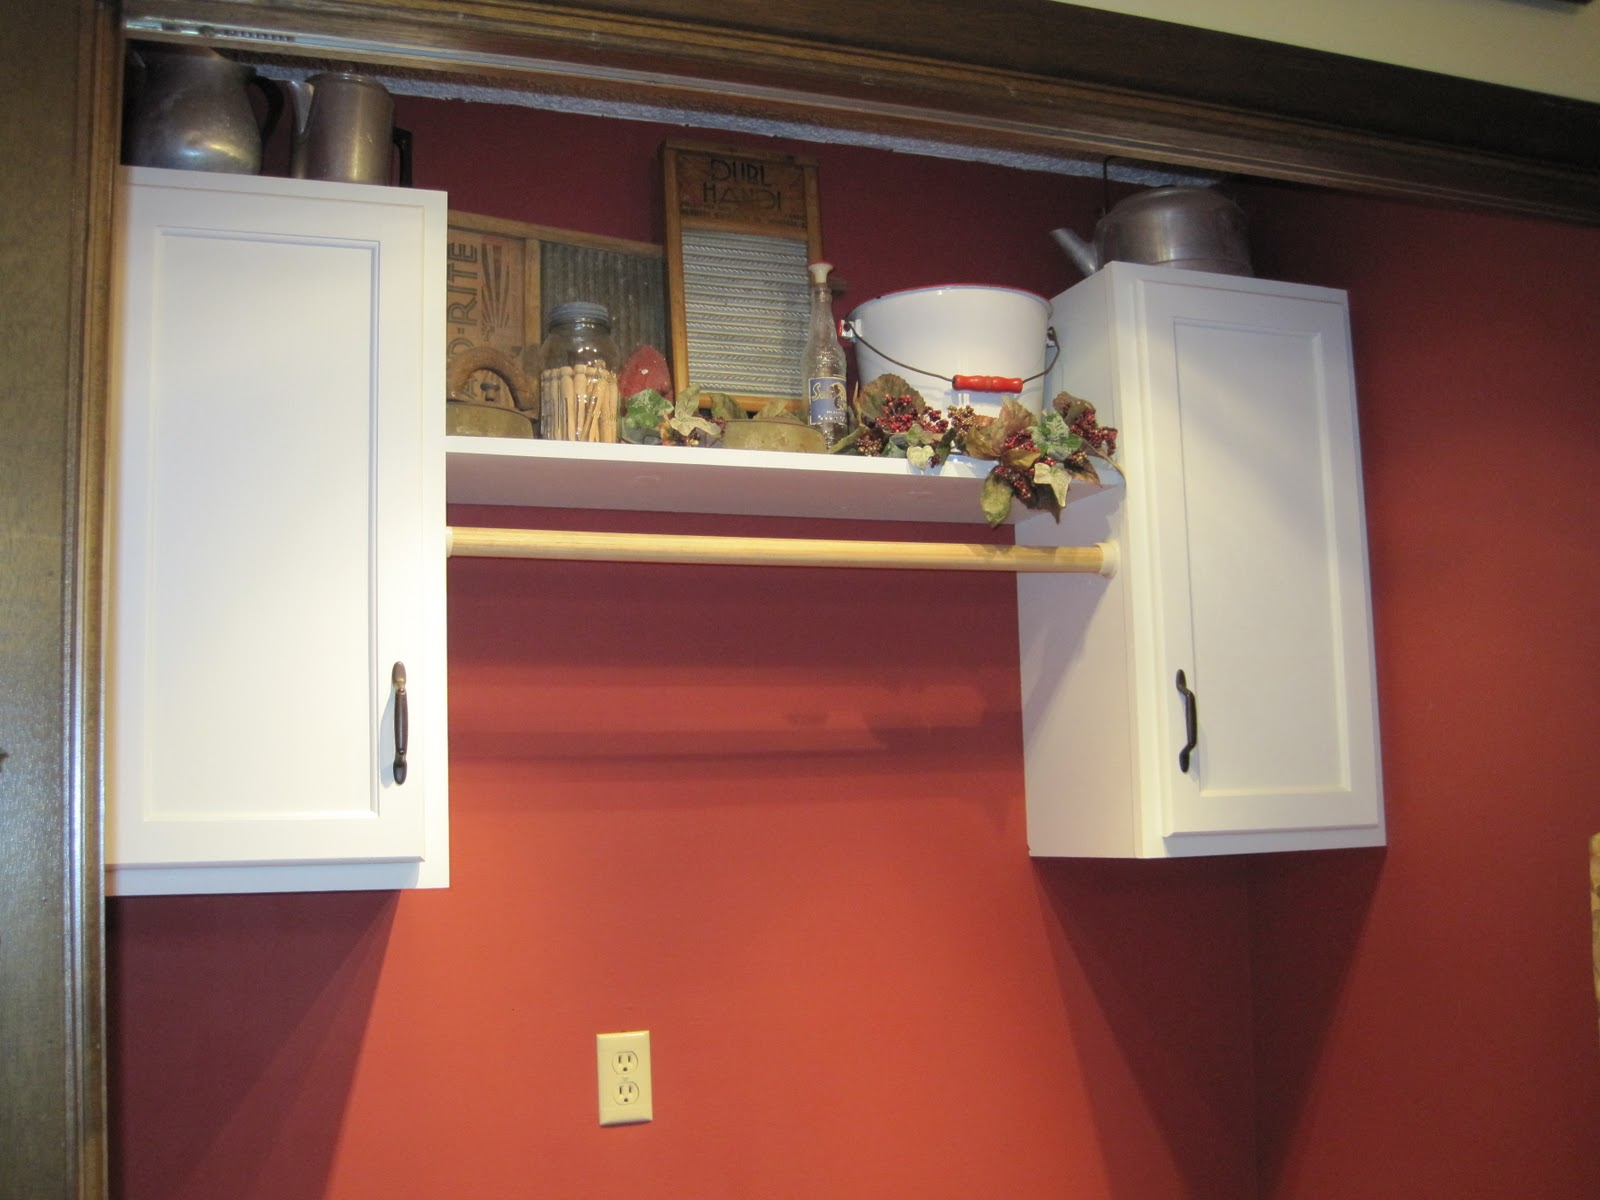 Lowe's Laundry Cabinets